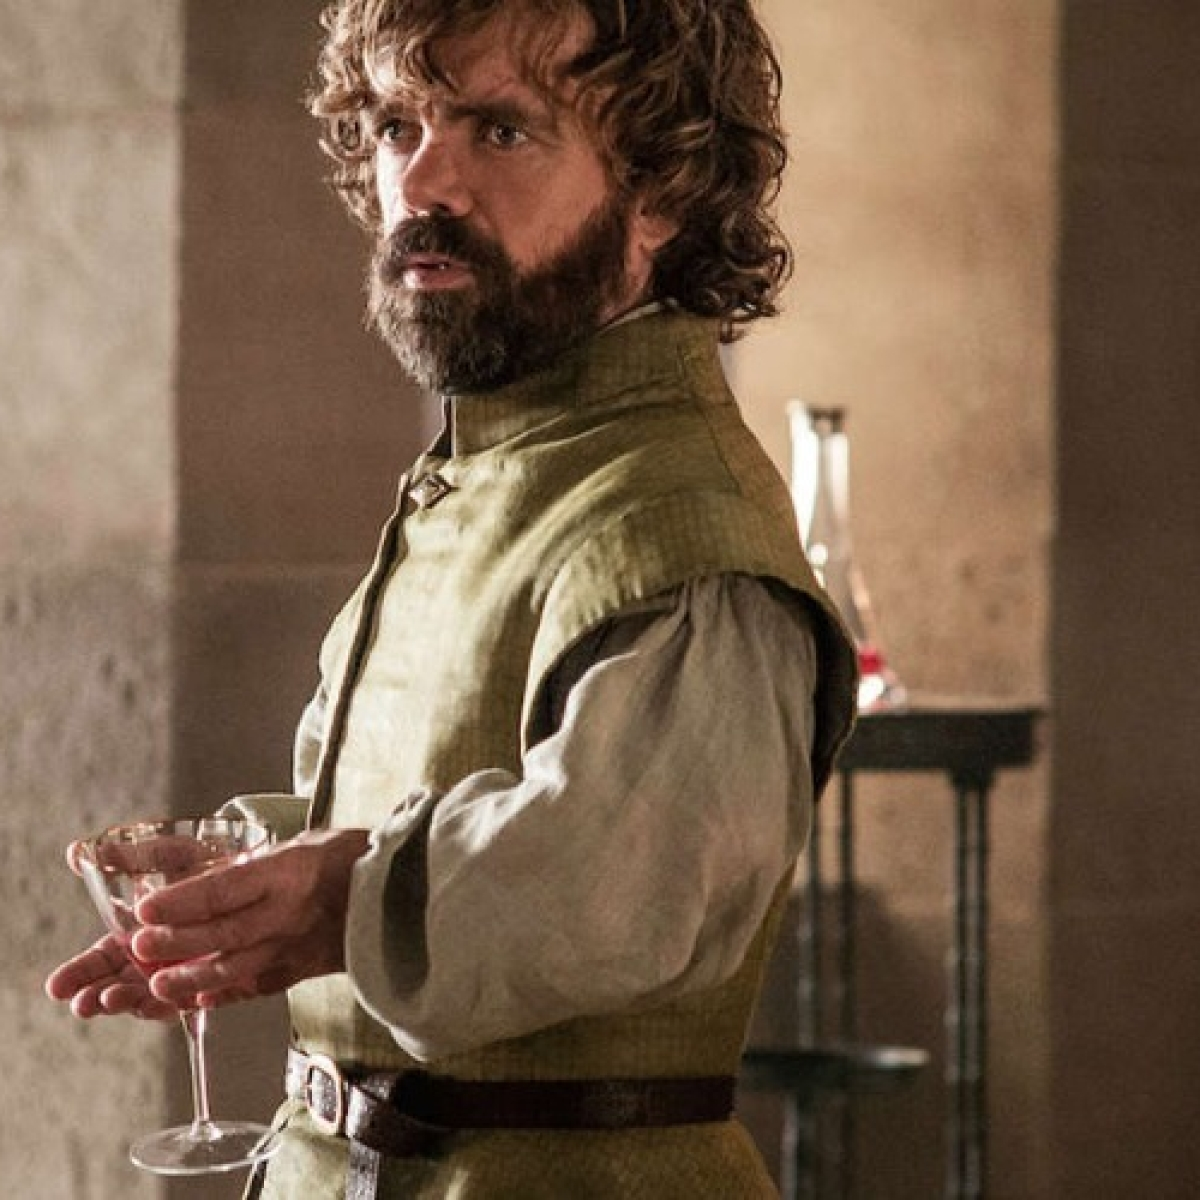 'Tyrion Lannister was right, we drink and we know things': Light drinkers are smarter than teetotallers, reveals study